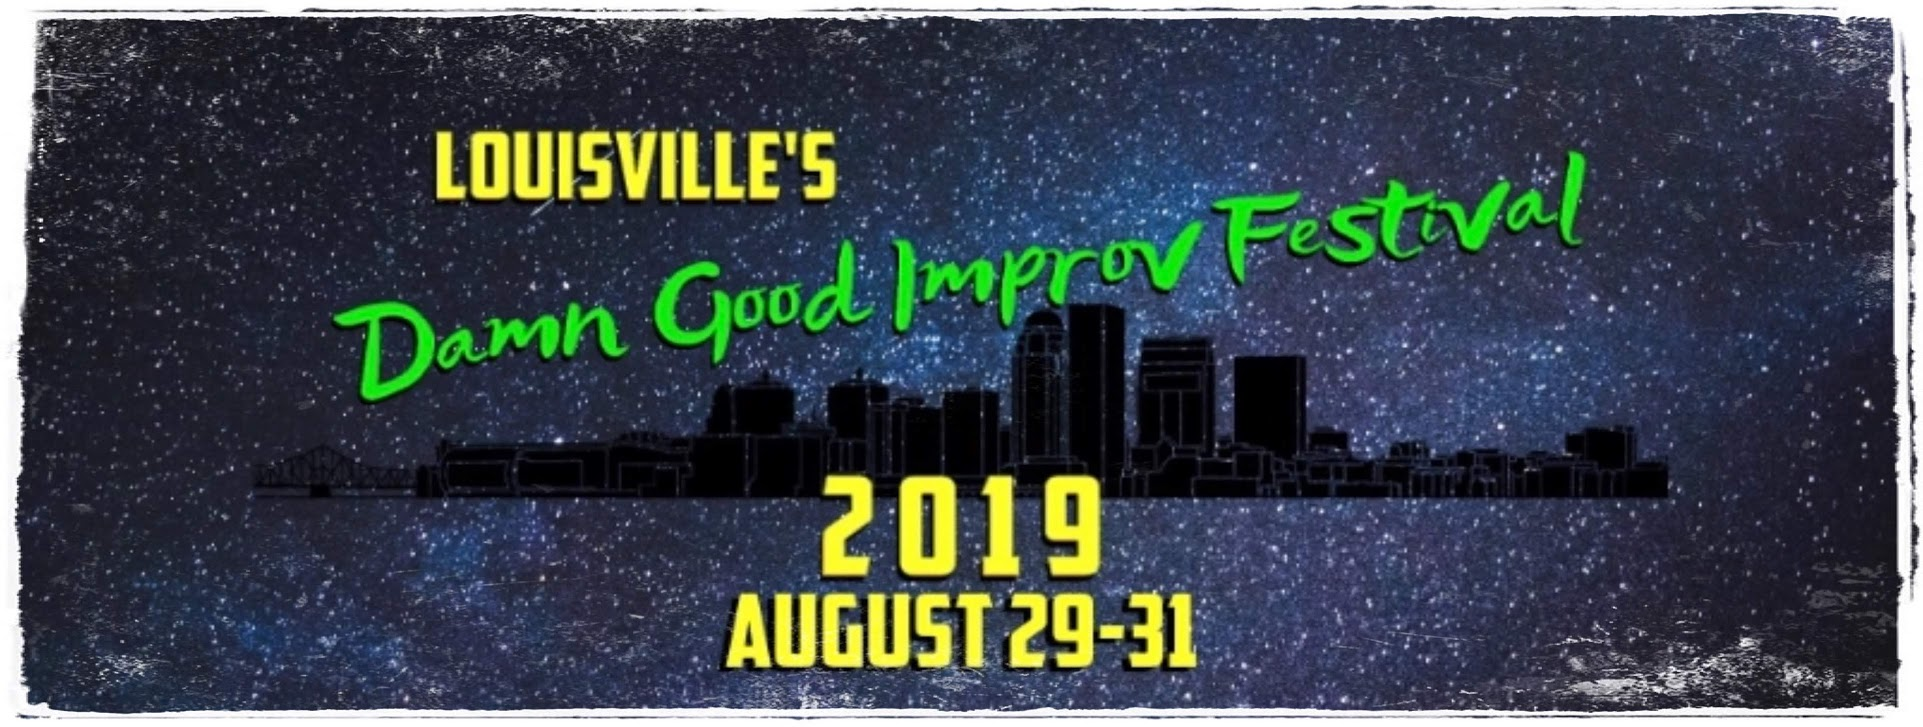 Louisville Events Calendar.Events The Bard S Town